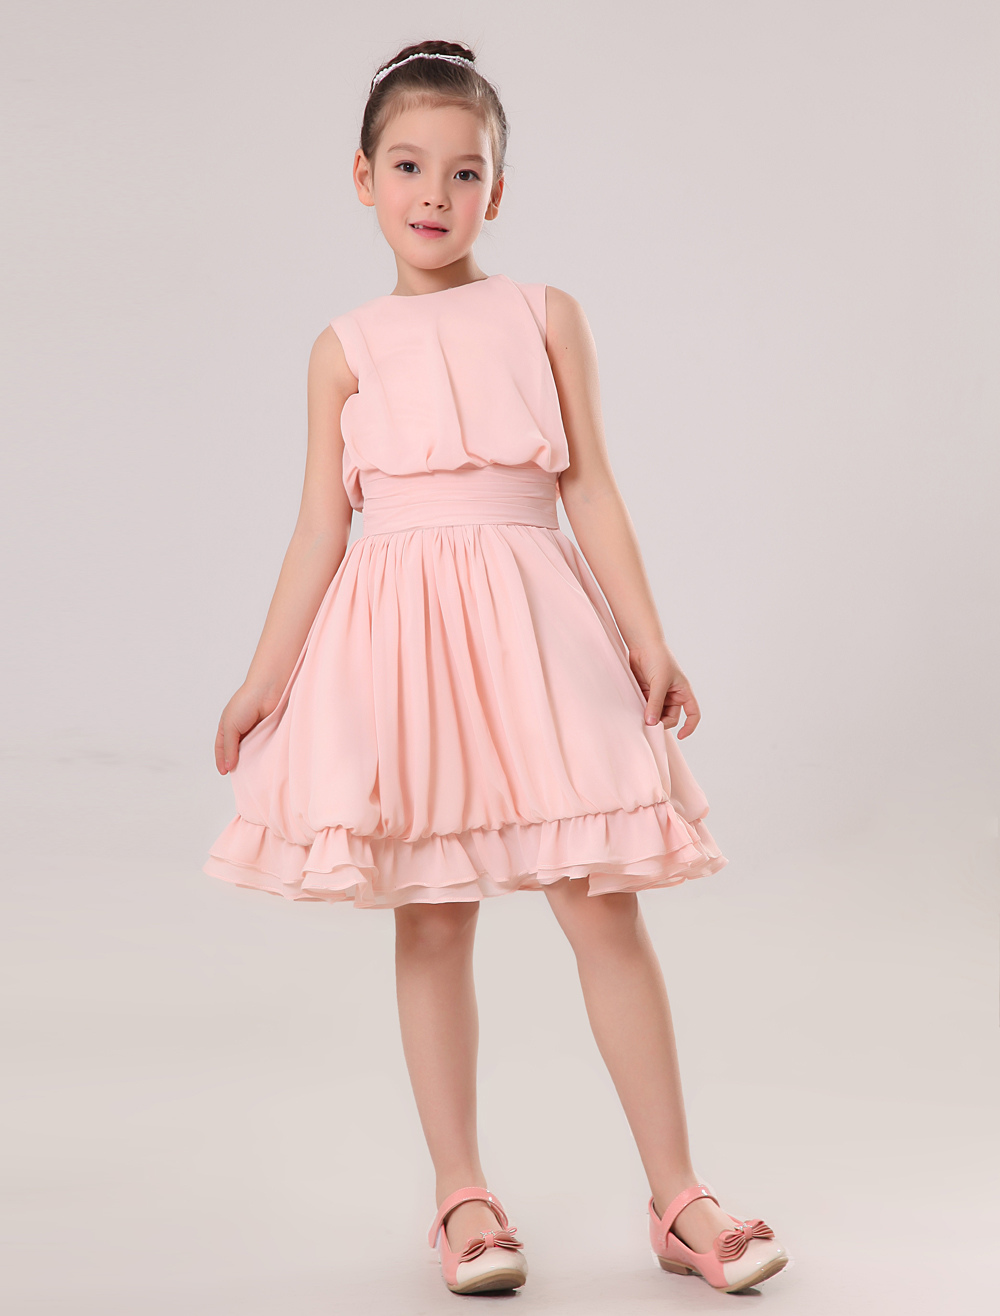 Peach flower girl dresses chiffon a line knee length toddlers peach flower girl dresses chiffon a line knee length toddlers dinner dress milanoo ombrellifo Images